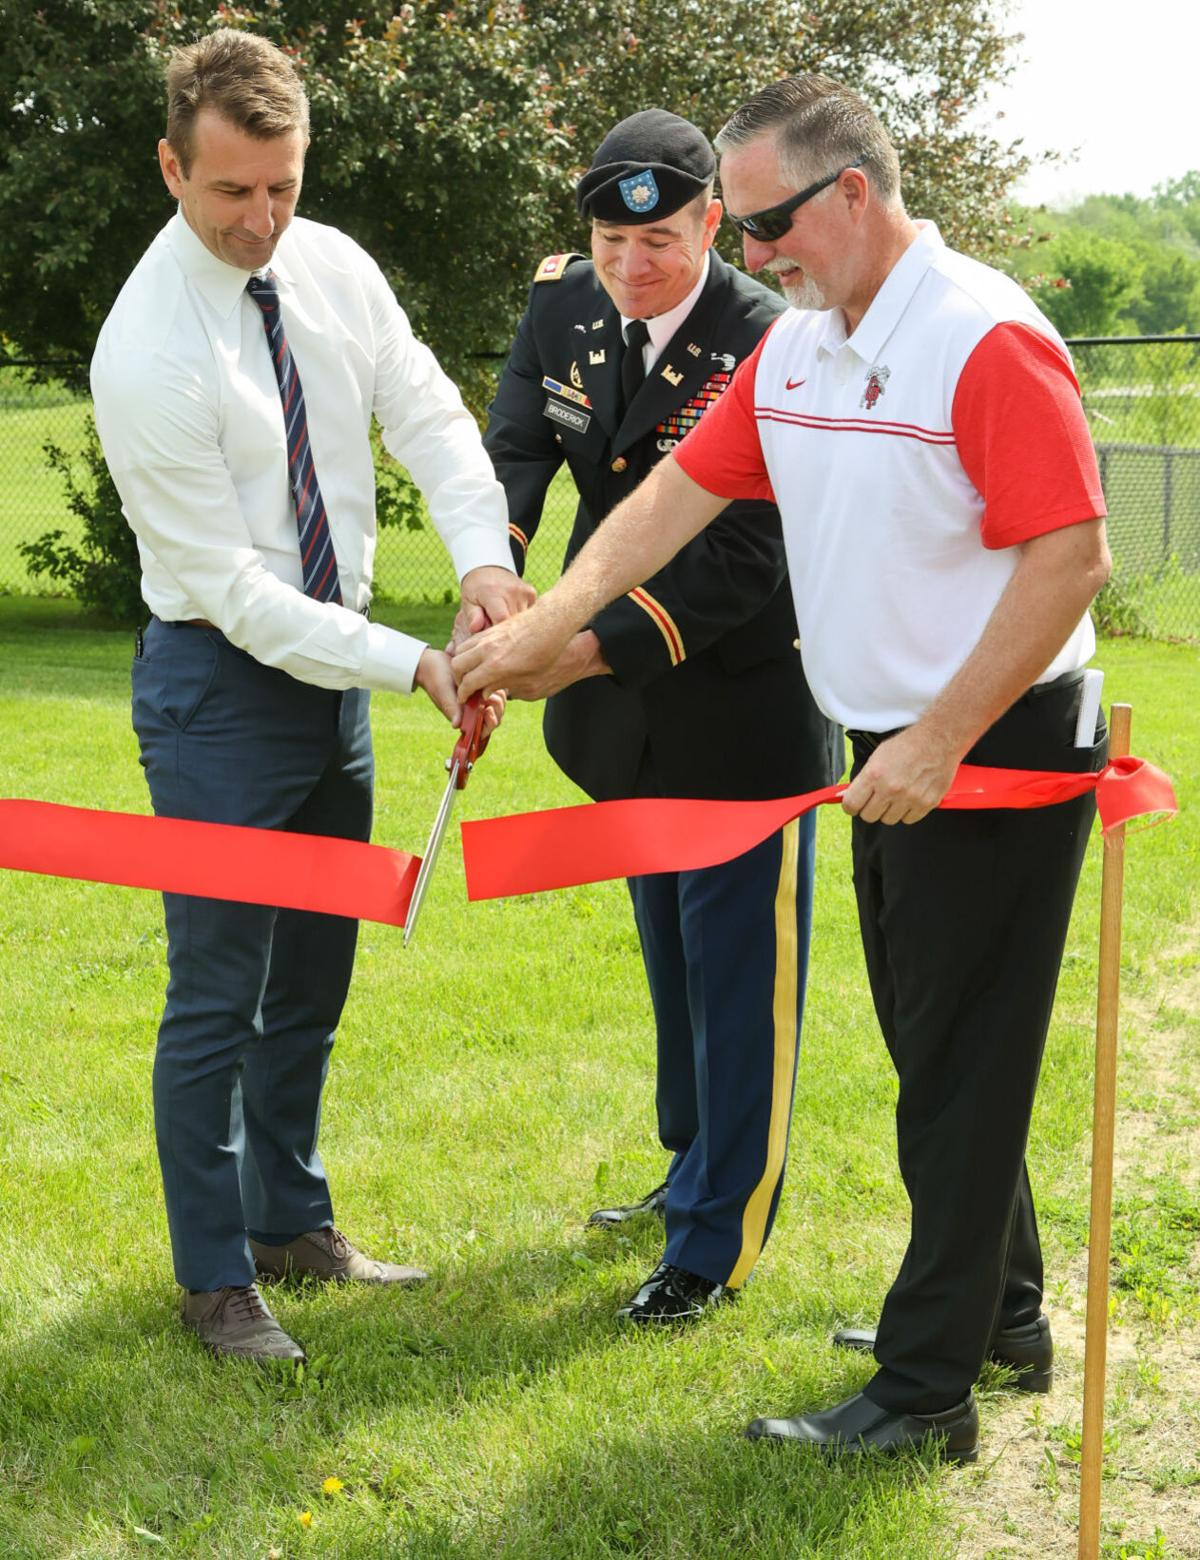 Ribbon-cutting marks end of a sanitary sewer infrastructure improvement project